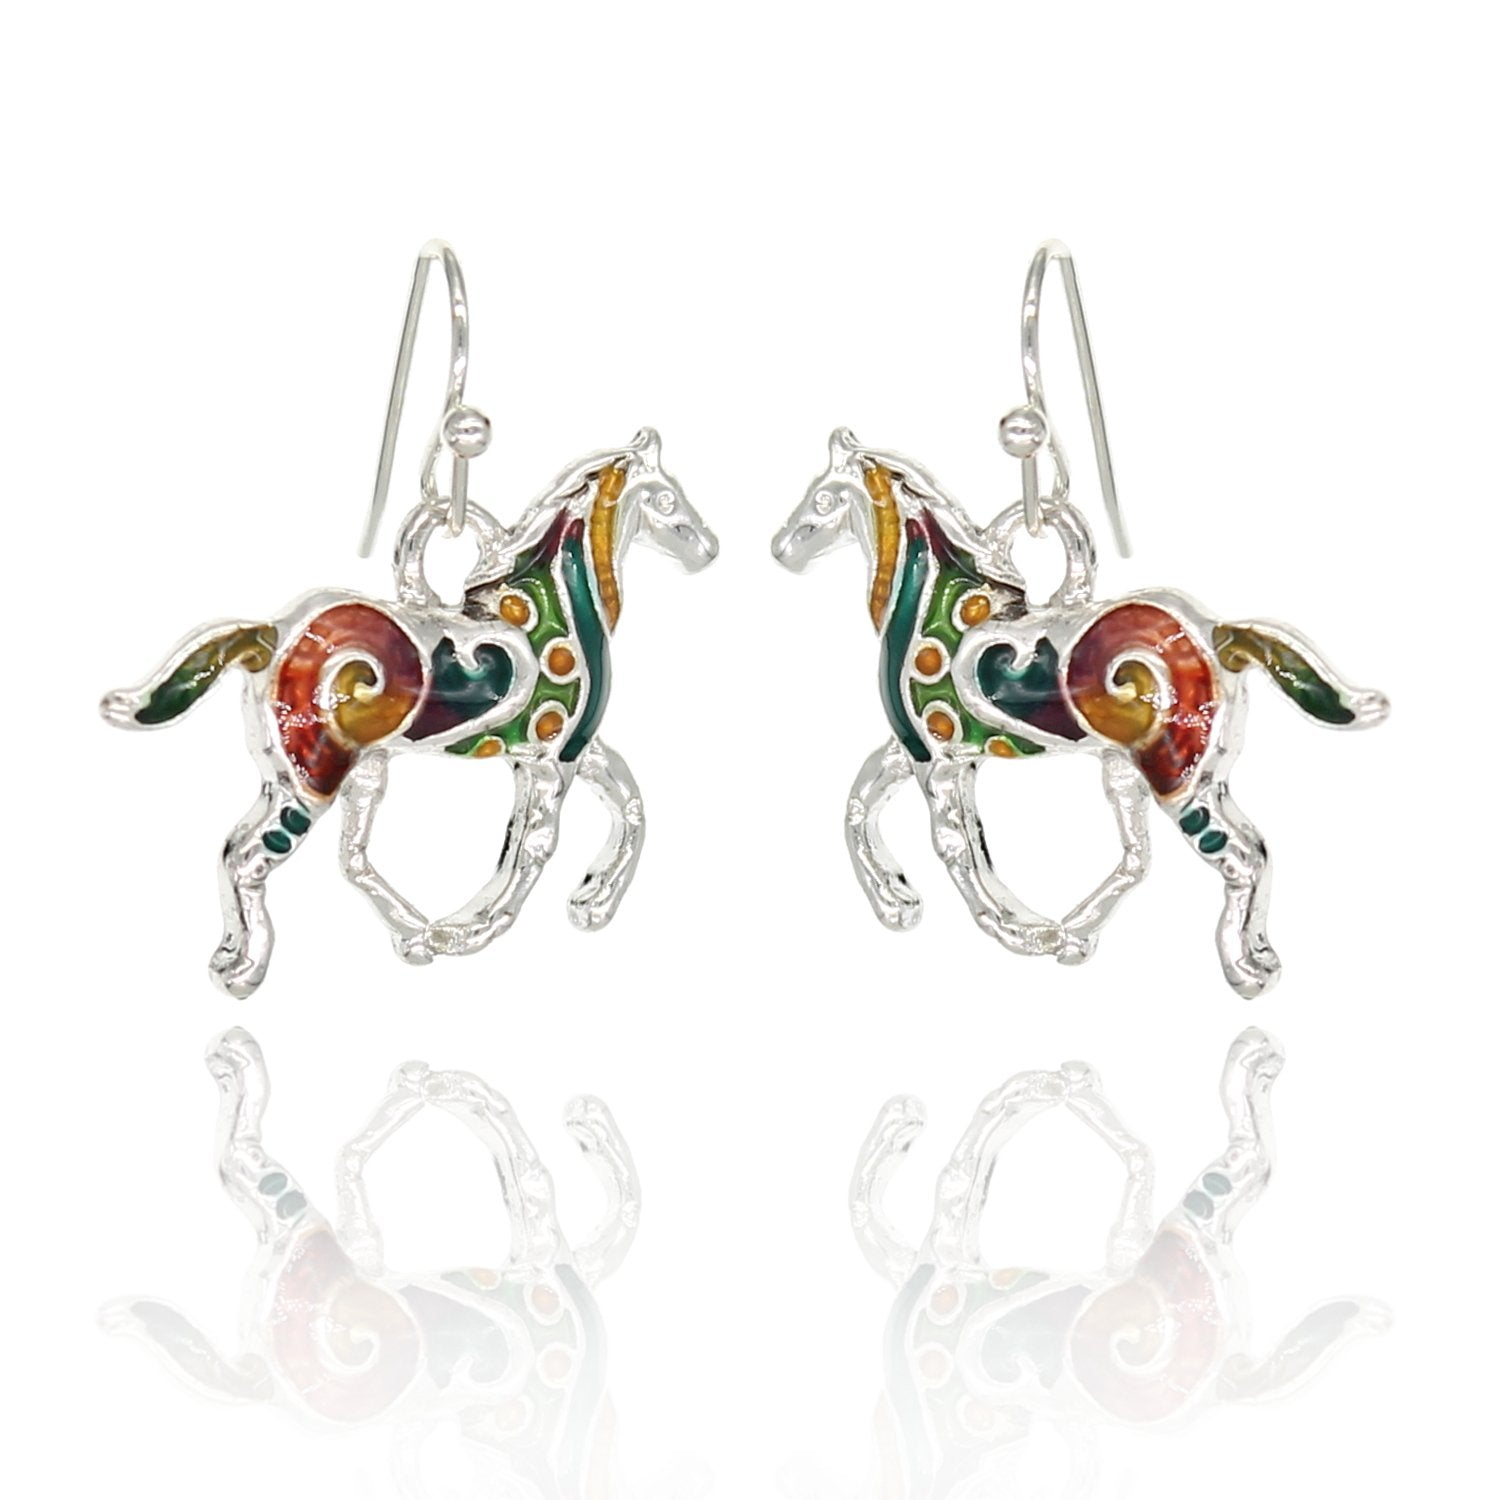 BeSheek Jewelry Hand Painted Silvertone Mosaic Horse Fashion Earrings